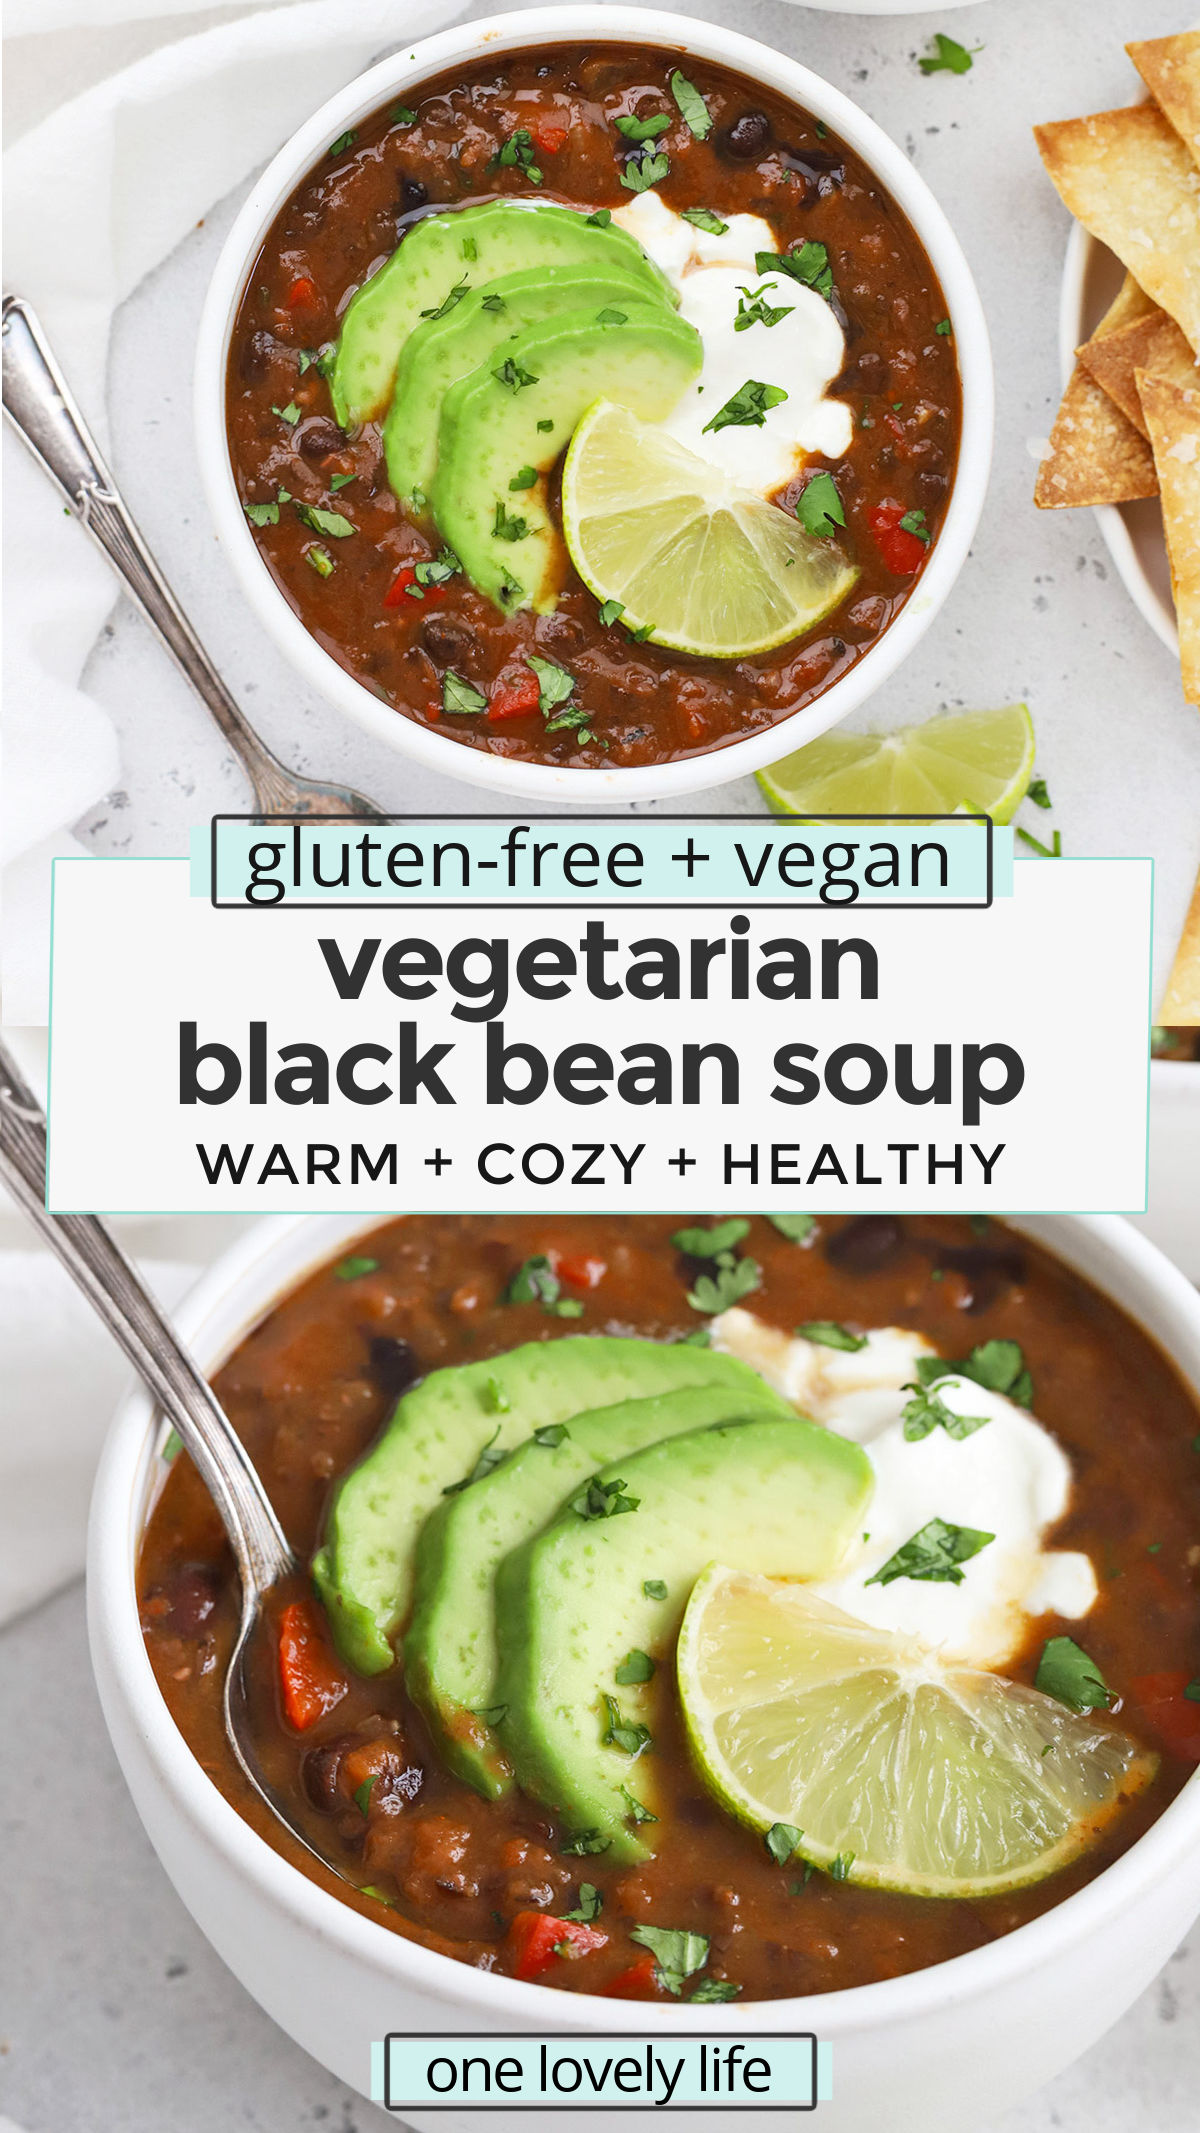 Easy Vegan Black Bean Soup - This healthy black bean soup is so simple to make! You'll love the colors and flavor. (Gluten free & vegan) // Vegetarian Black bean soup // bean soup recipe // vegan soup // vegetarian soup // healthy soup // vegan chili // black bean chili // healthy dinner #healthydinner #healthysoup #vegan #vegetarian #blackbeansoup #meatlessmonday